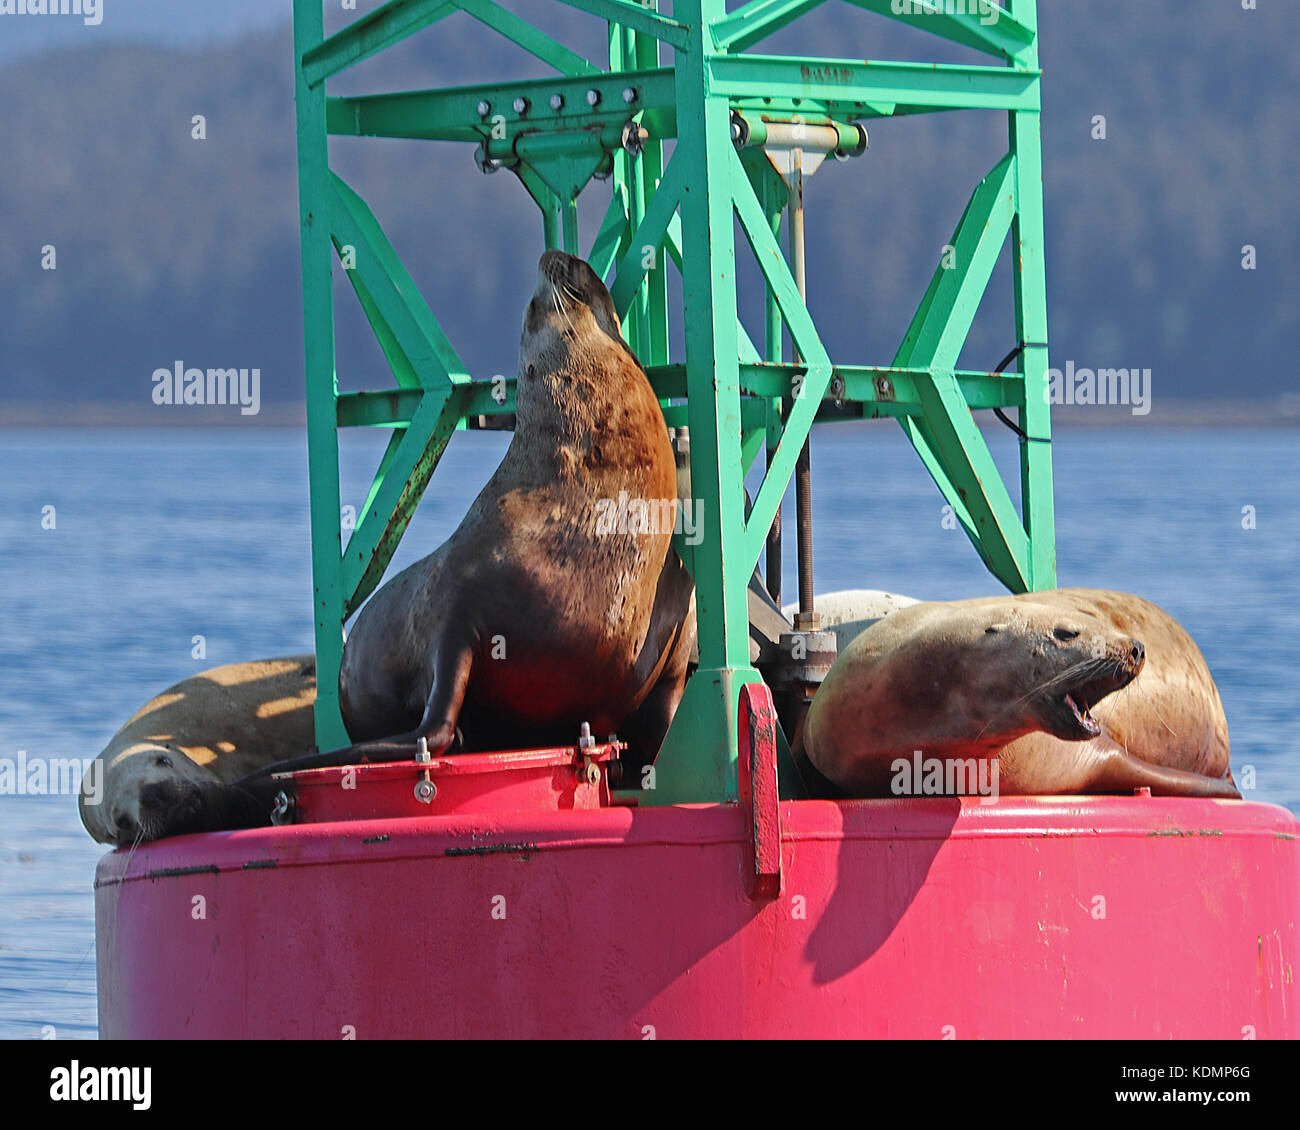 Closeup of Stellar Sea Lions (Eumetopias jubatus) enjoying a beautiful Alaska day on a buoy. - Stock Image